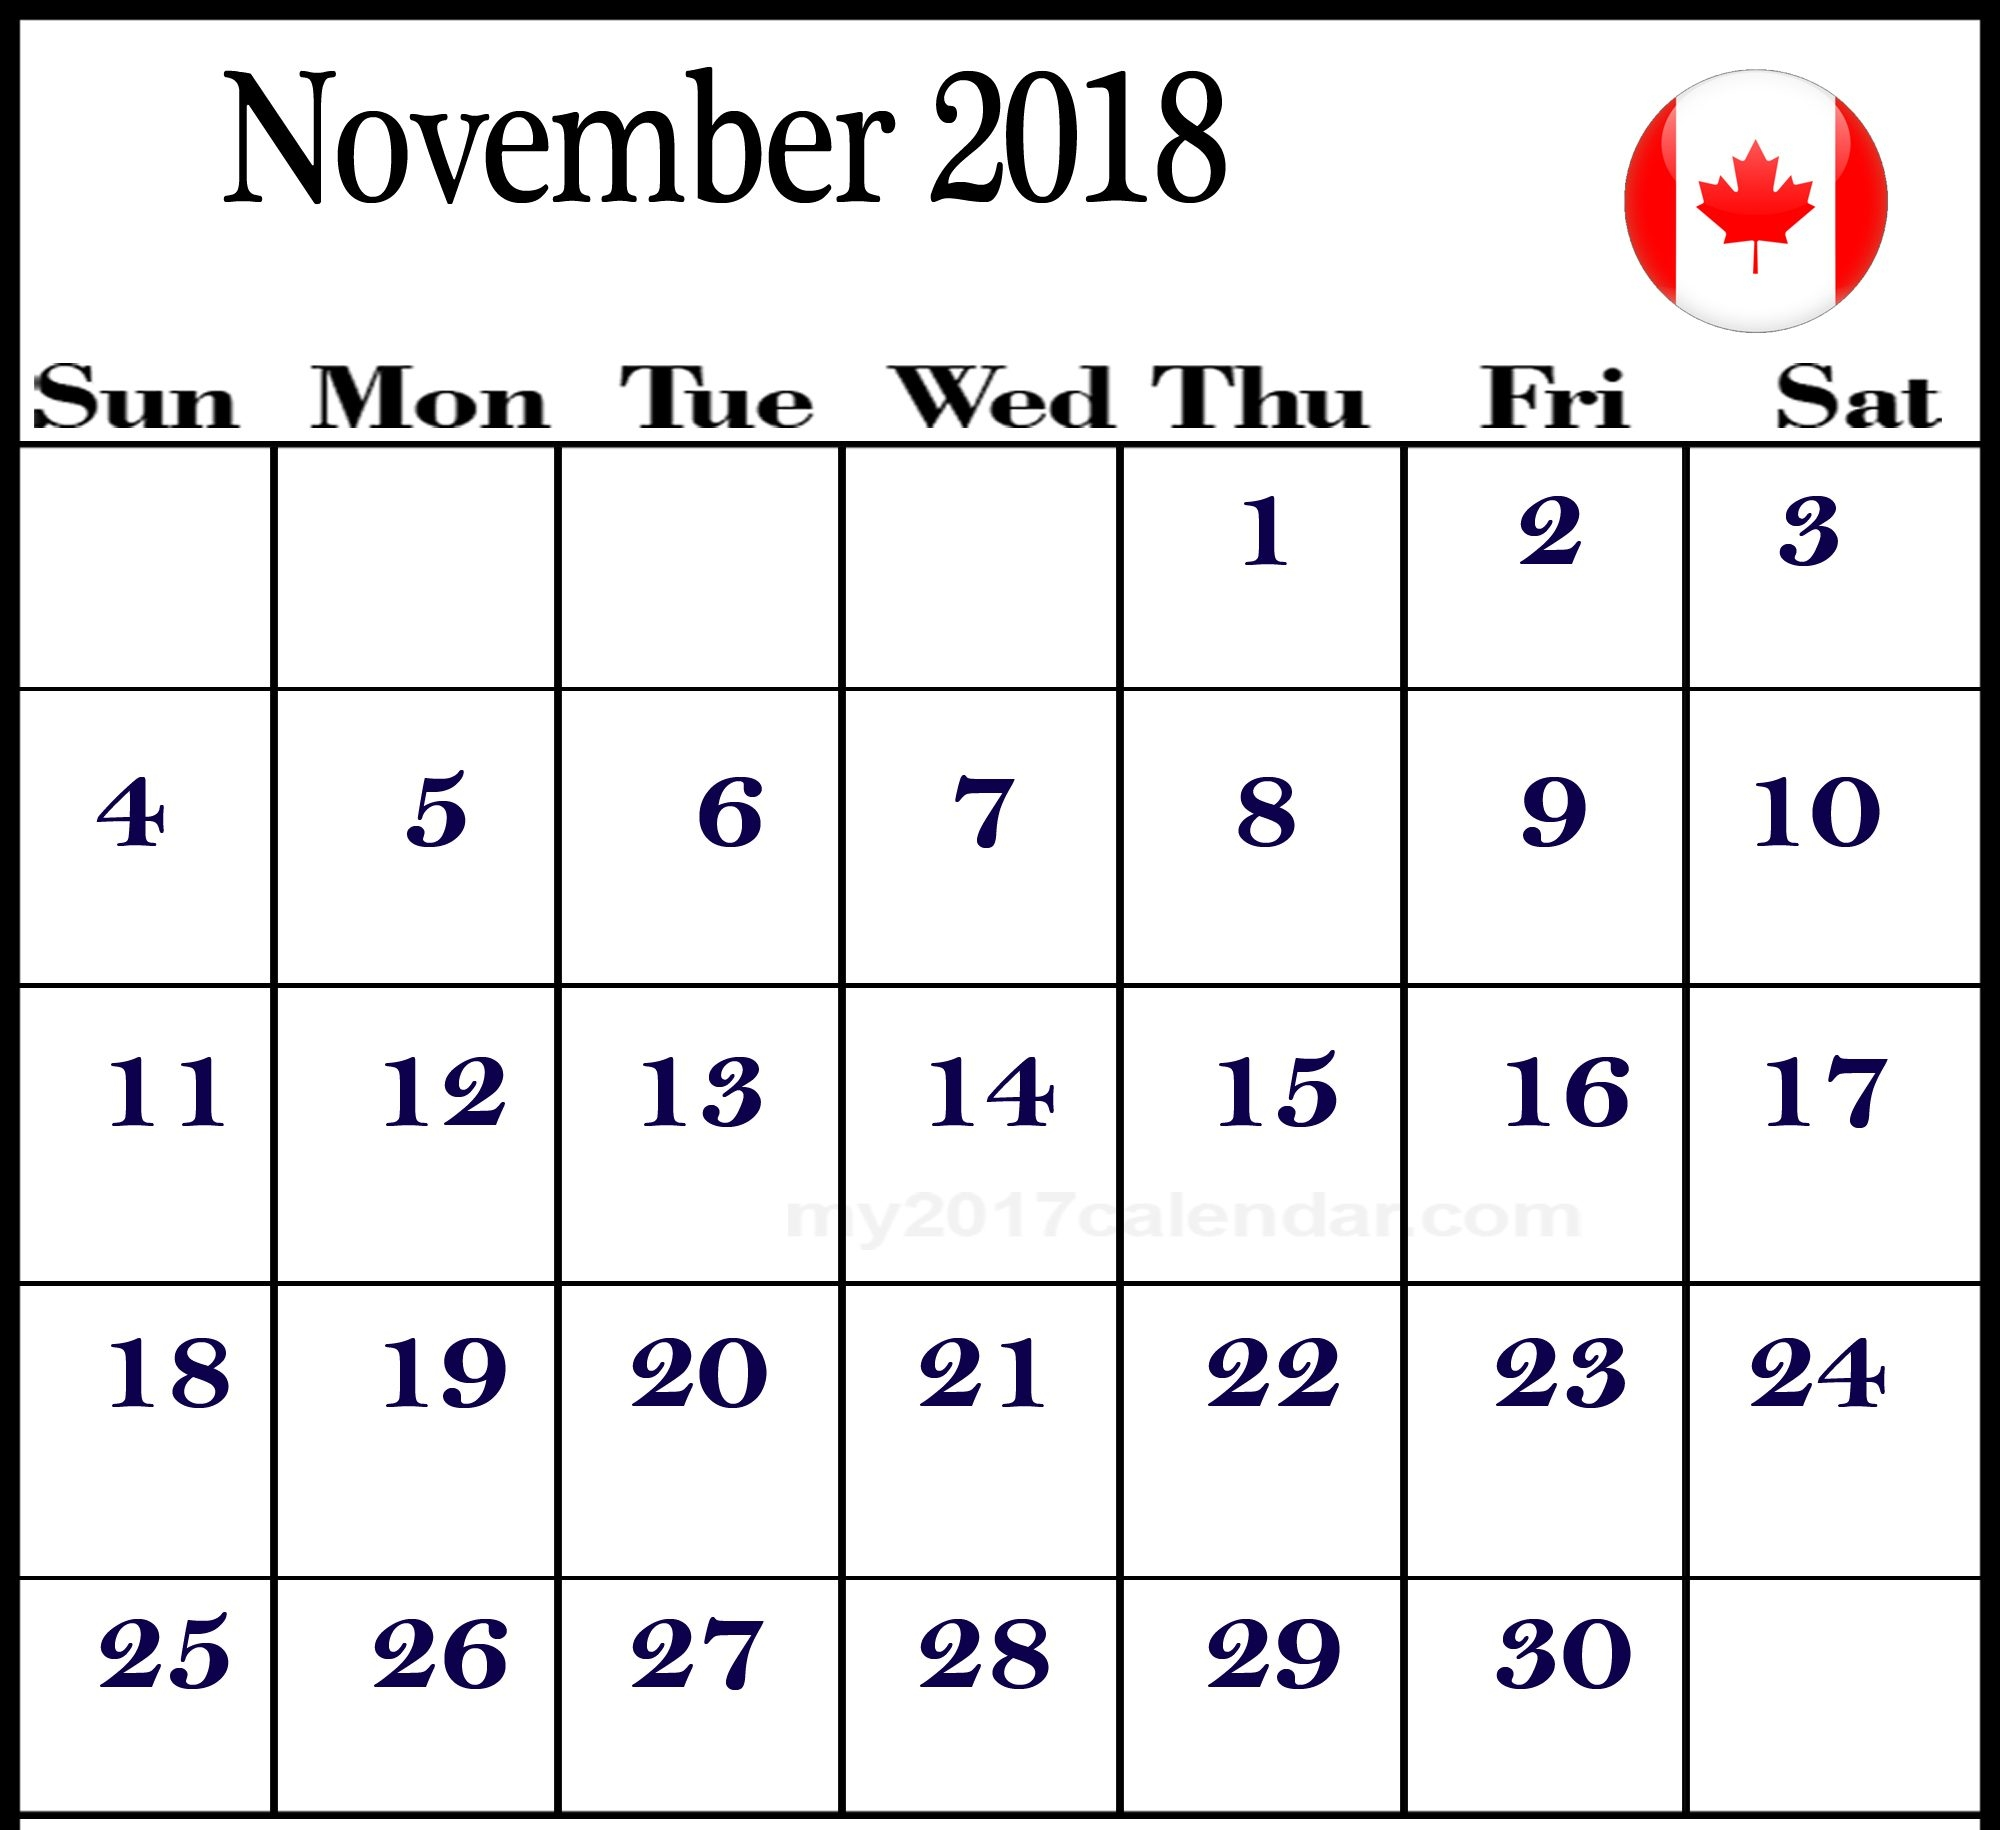 november 2018 calendar canada free business calendar templates::November 2018 Calendar Canada